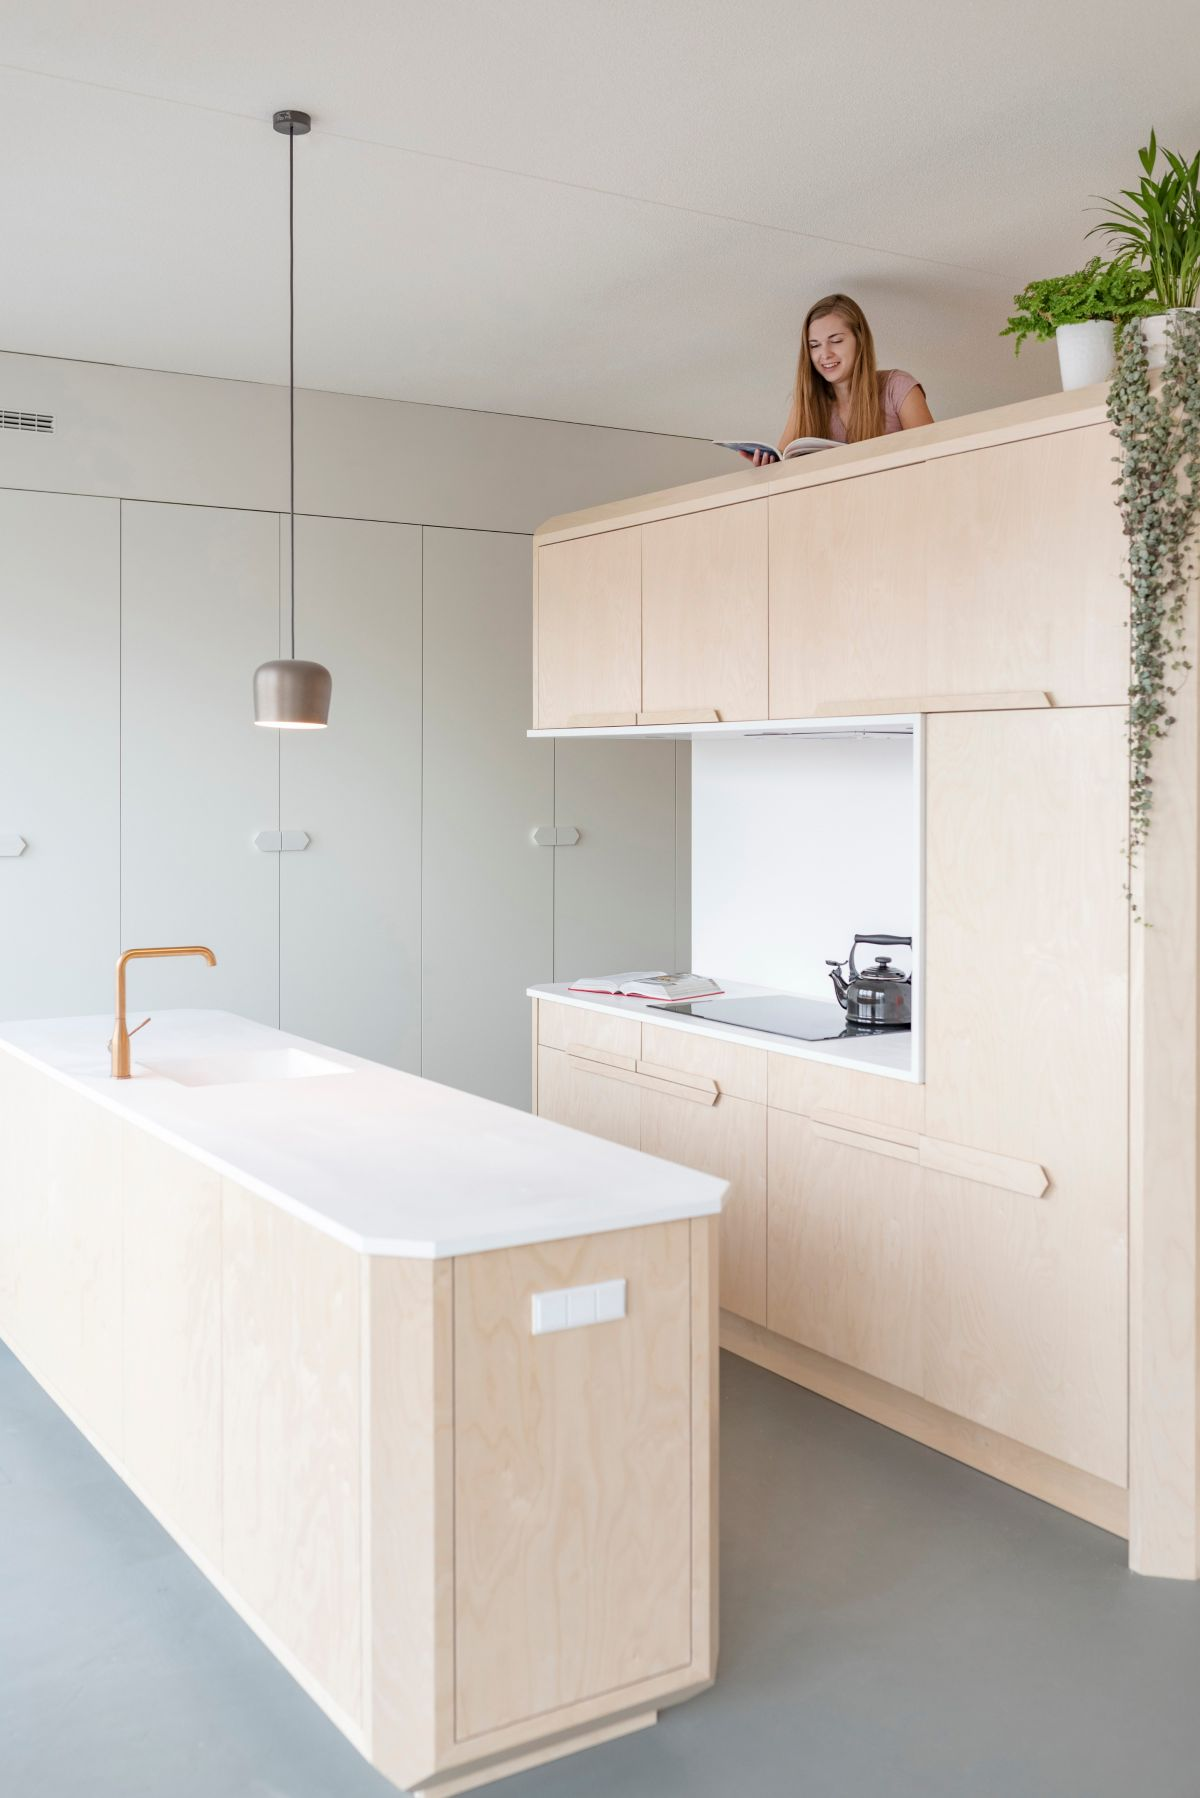 The combination of birch wood and white Corian gives the apartment a modern and clean aesthetic